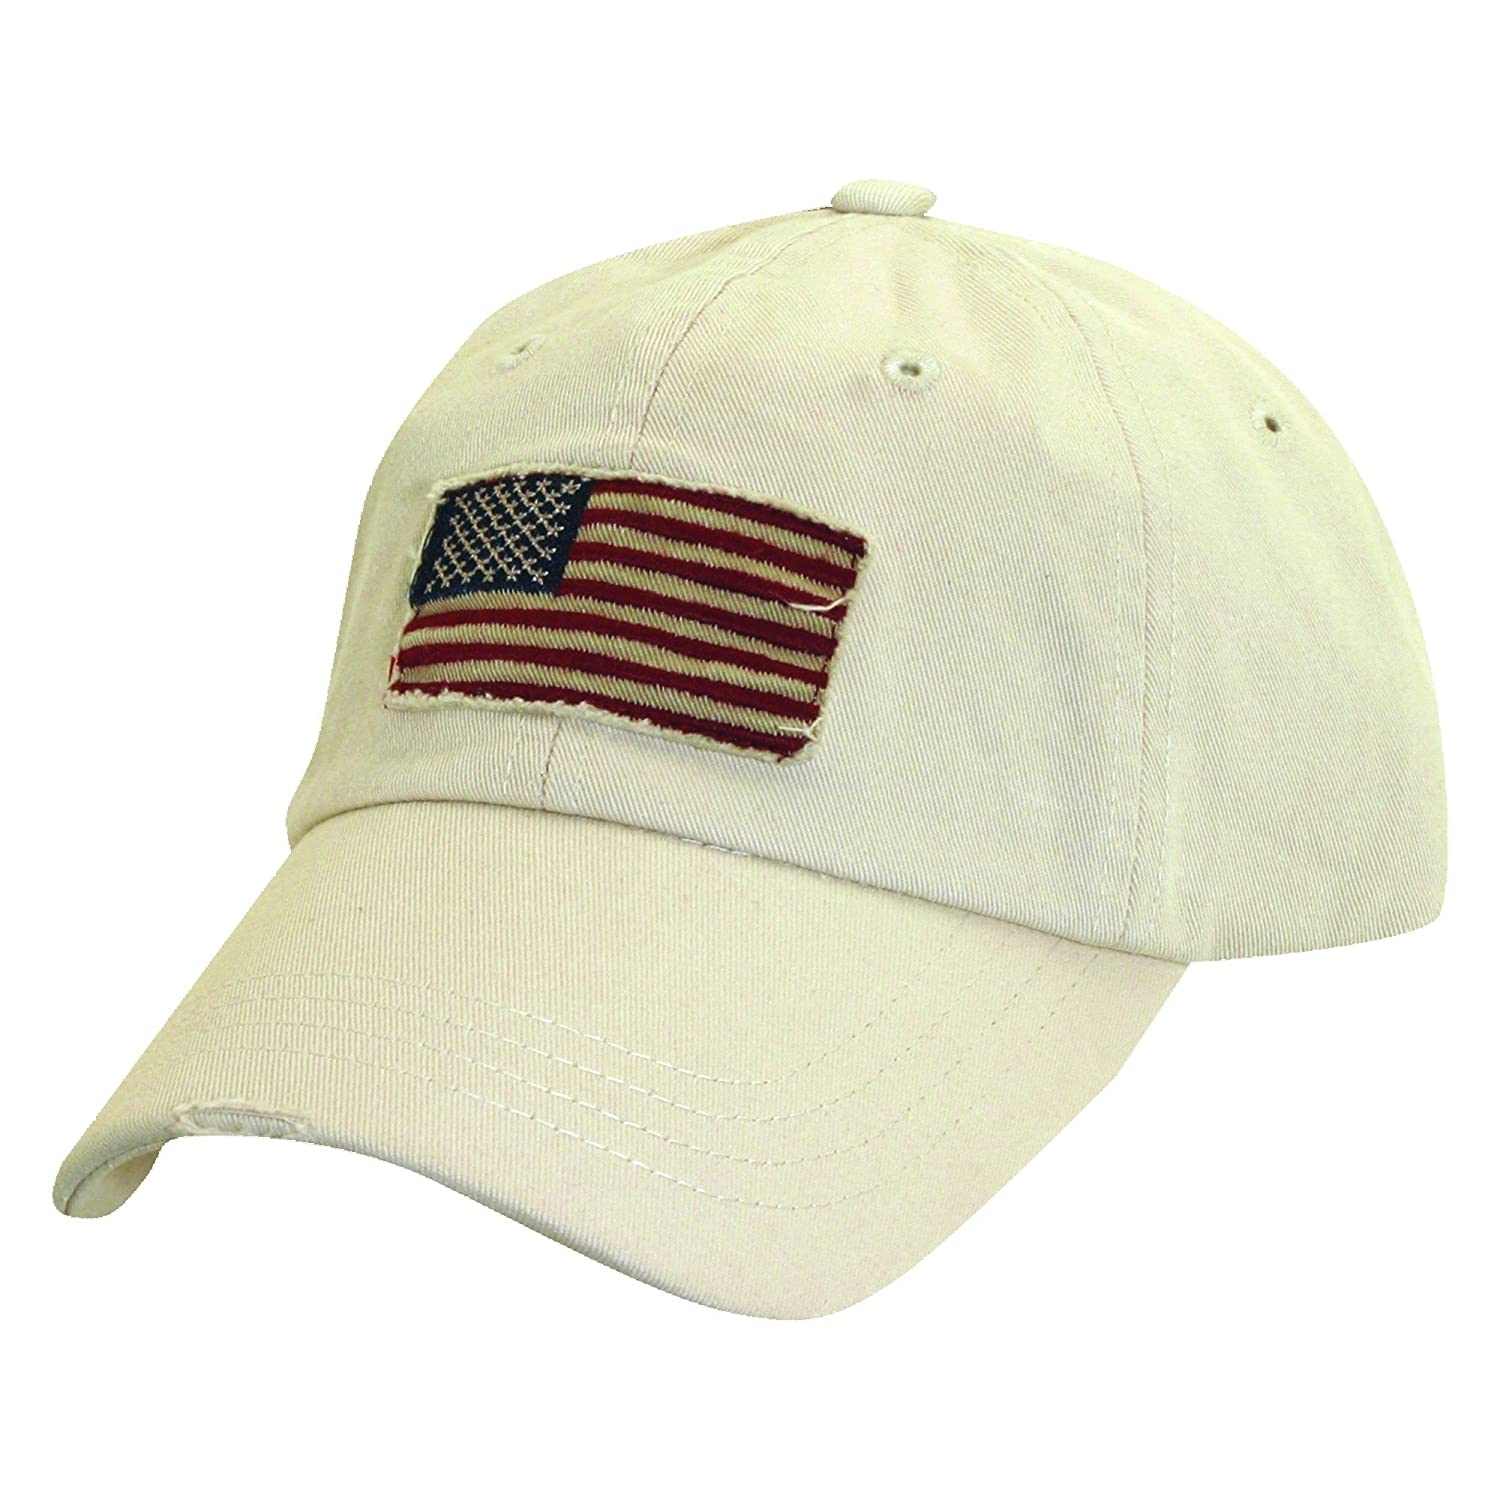 under armour american flag hat. dorfman pacific cotton stars and stripes american flag baseball hat, black at amazon men\u0027s clothing store: under armour hat